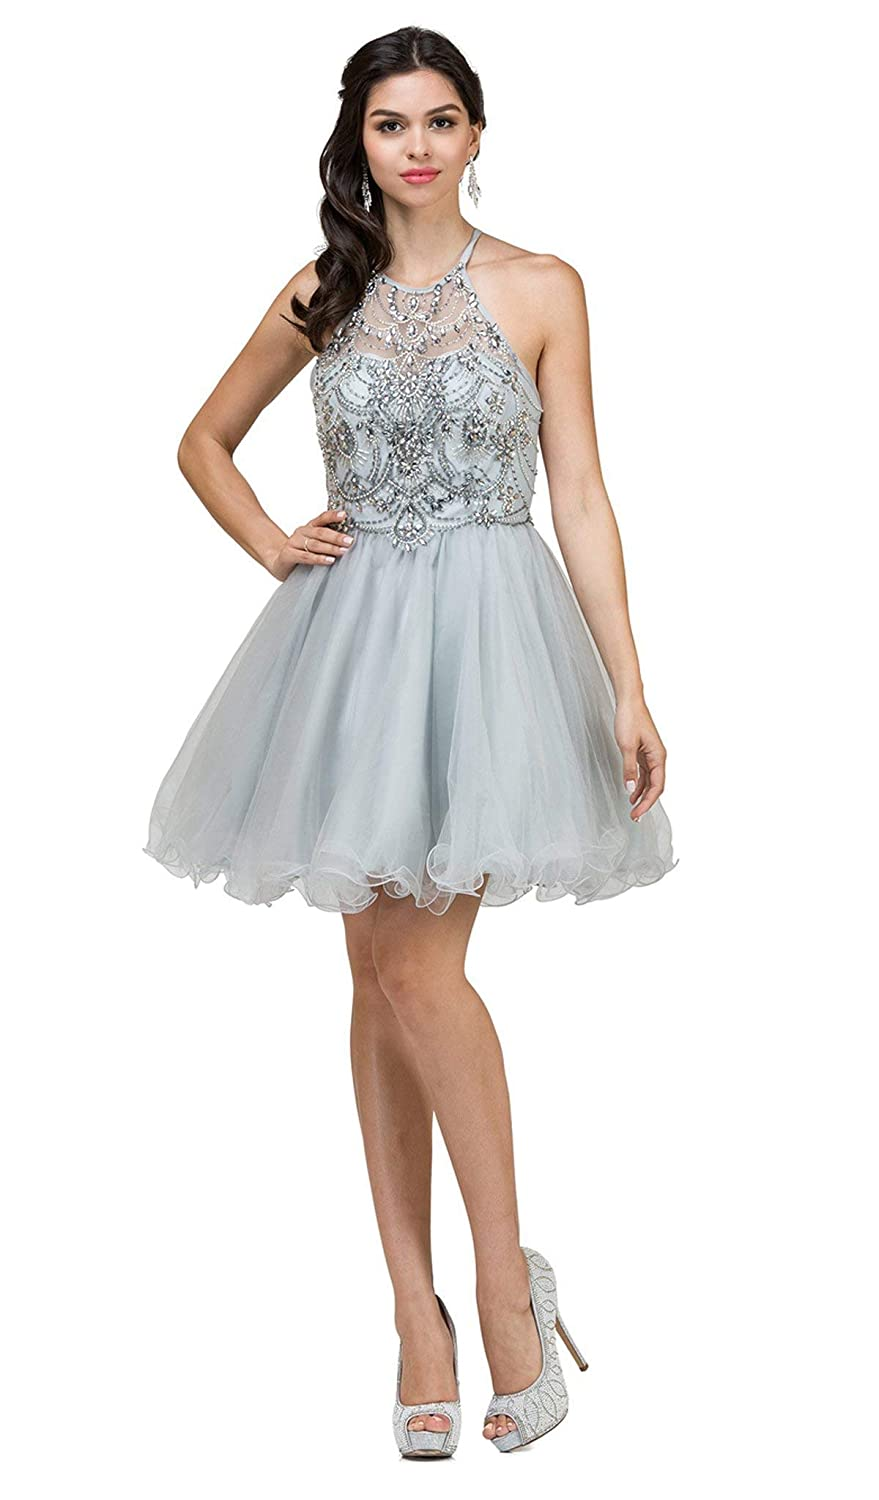 d90993b58b60 Dancing Queen 2102 Beaded Halter Cocktail Dress in Silver at Amazon Women's  Clothing store: